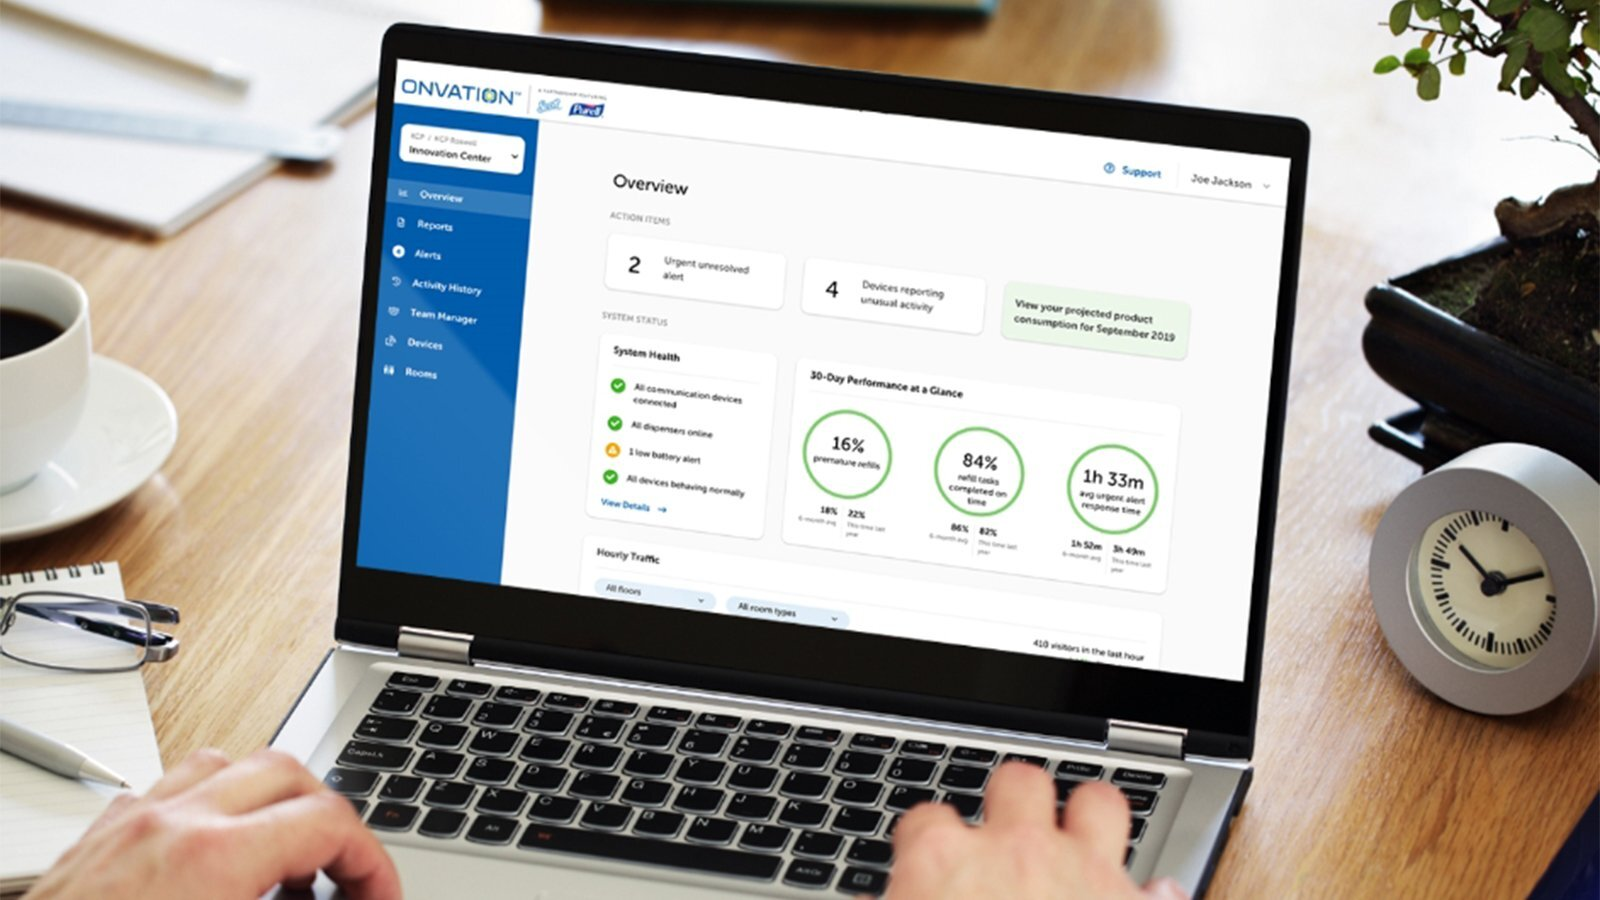 A laptop computer displaying an overview of the Onvation dashboard and an image of a facility manager.